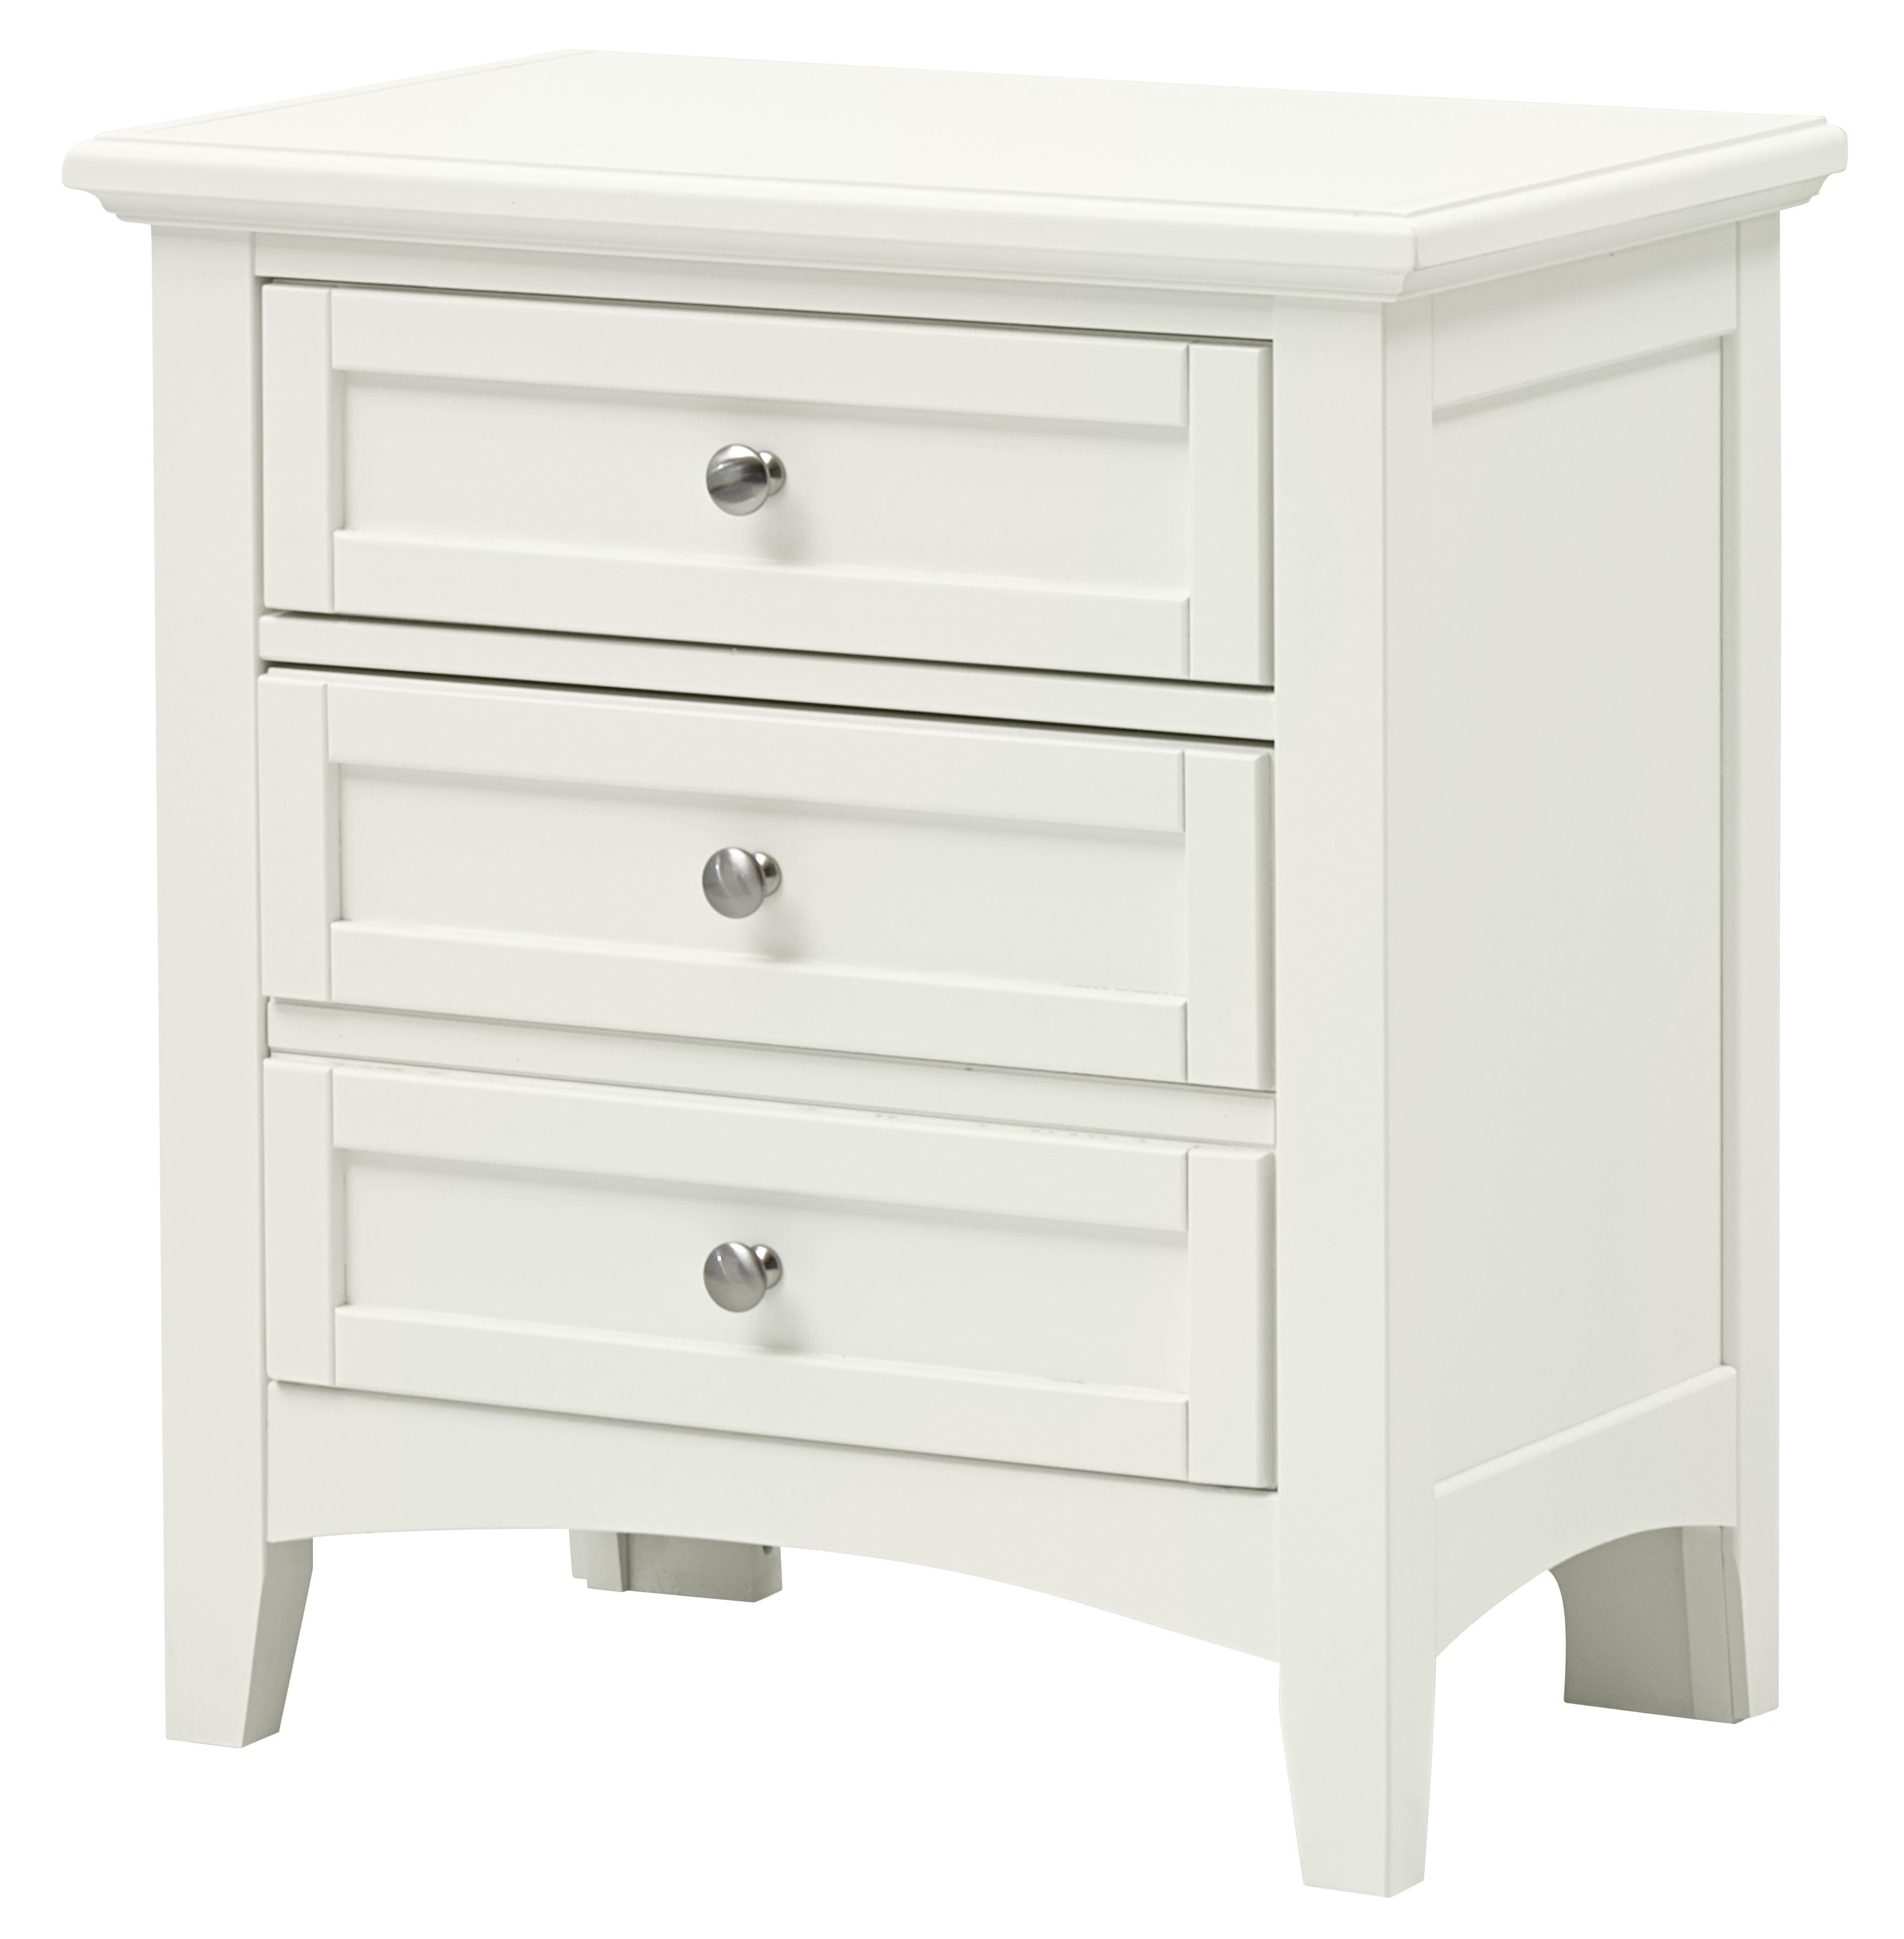 Vaughan Bassett Bonanza Night Stand - 2 Drawers - Item Number: BB29-226